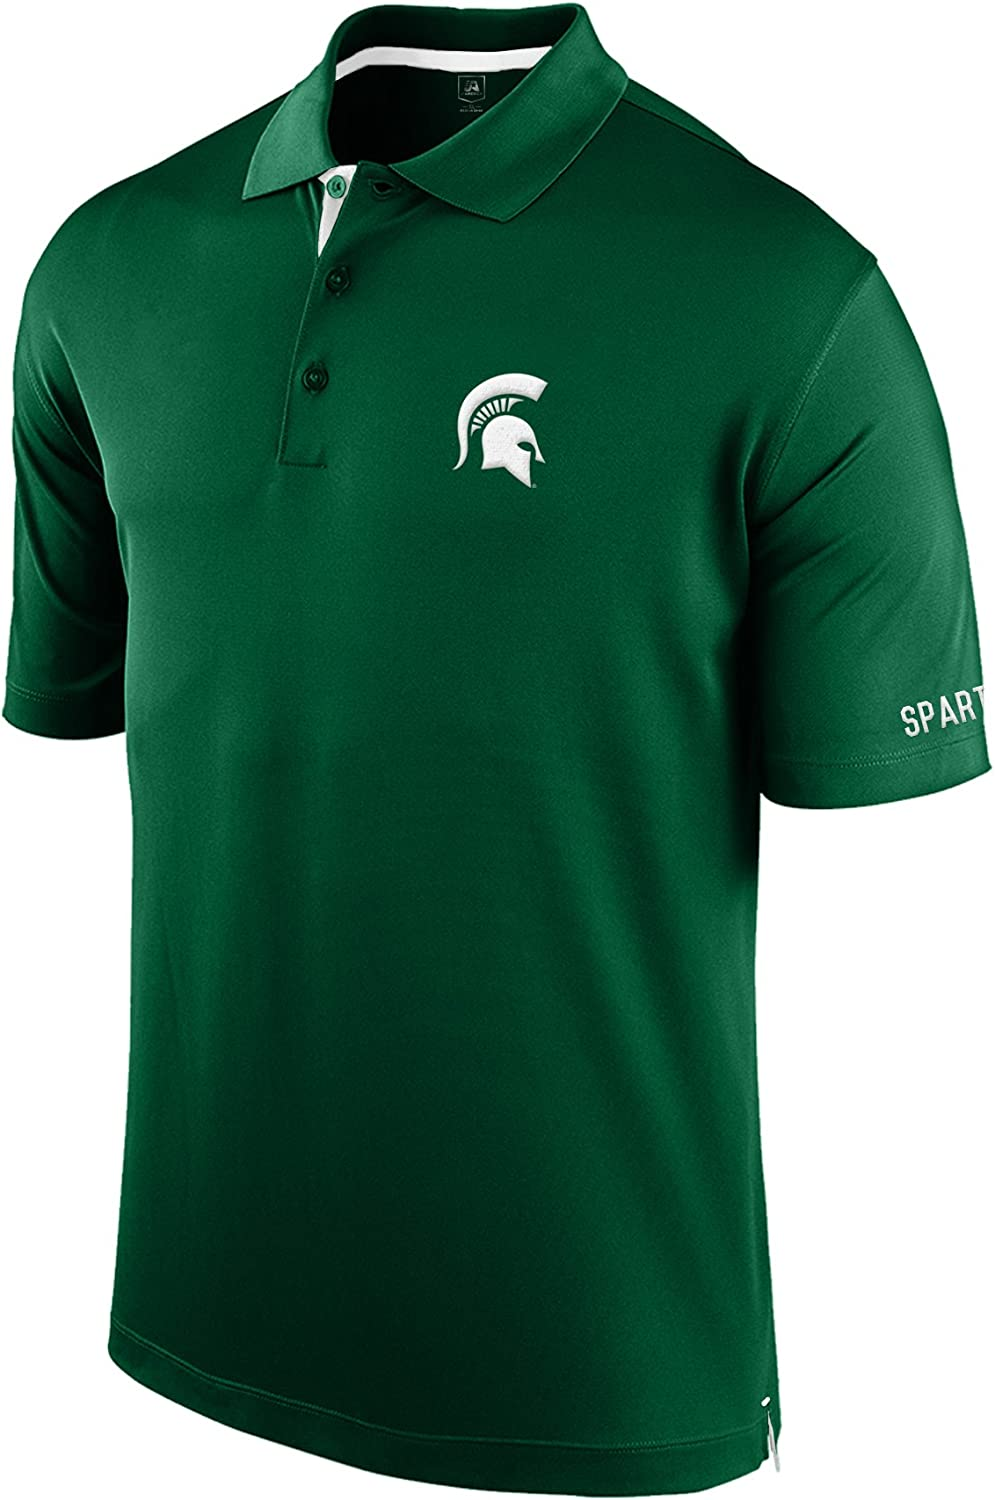 J America NCAA Mens Spector Poly Interlock Polo Shirt